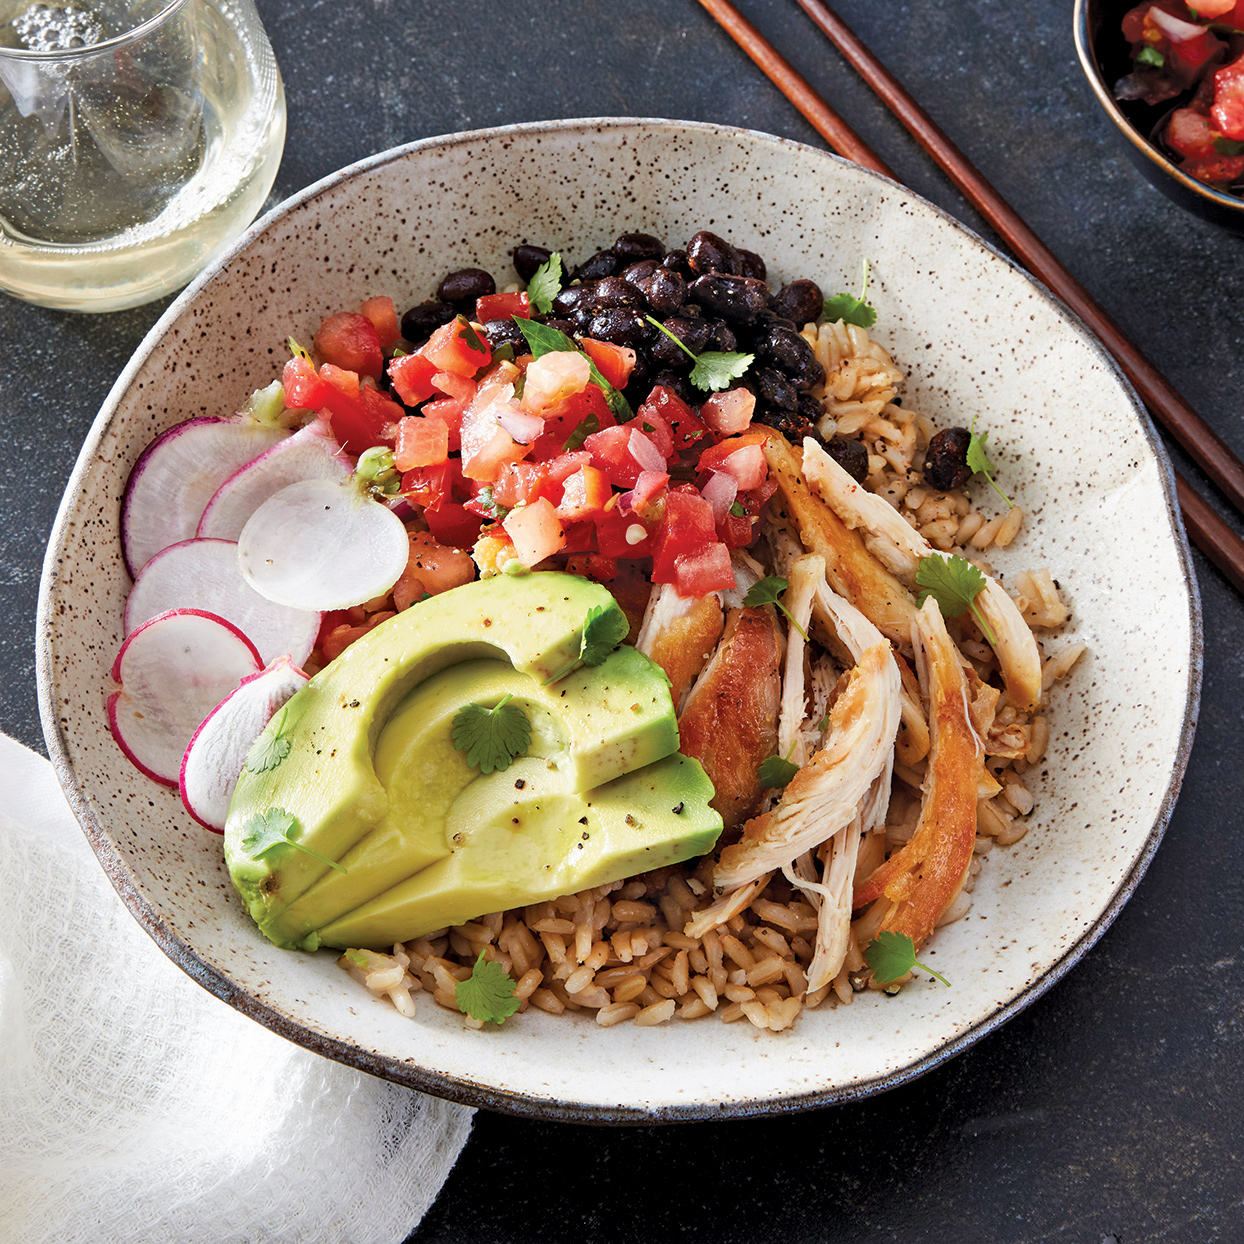 Slow-Cooker Chicken & Rice Bowls Trusted Brands